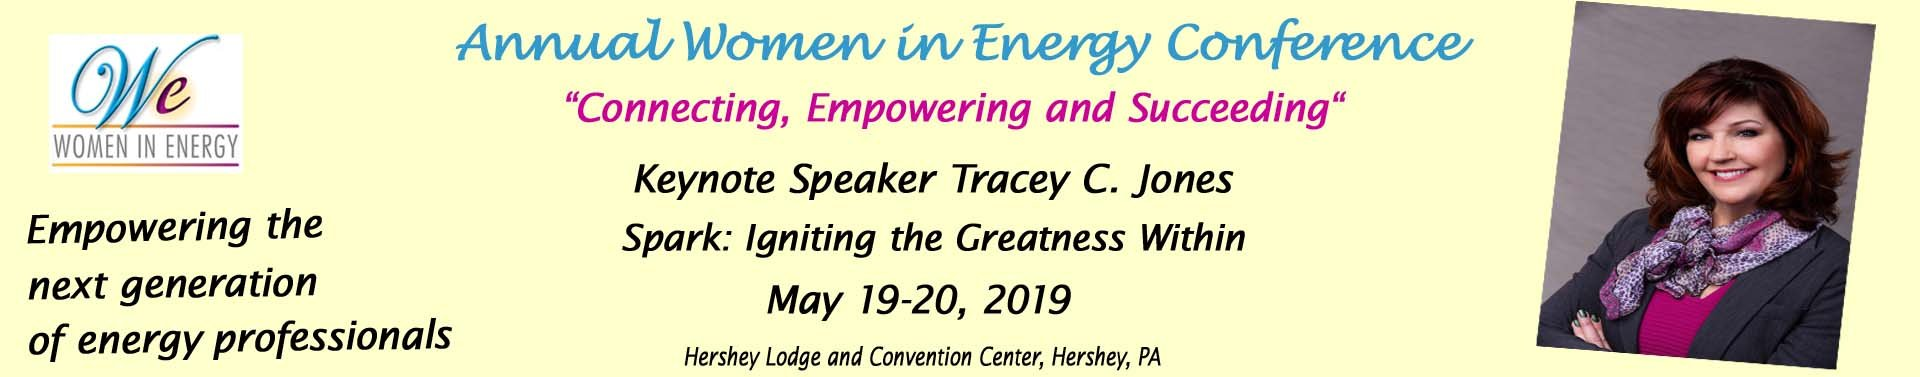 Women in Energy Annual Conference